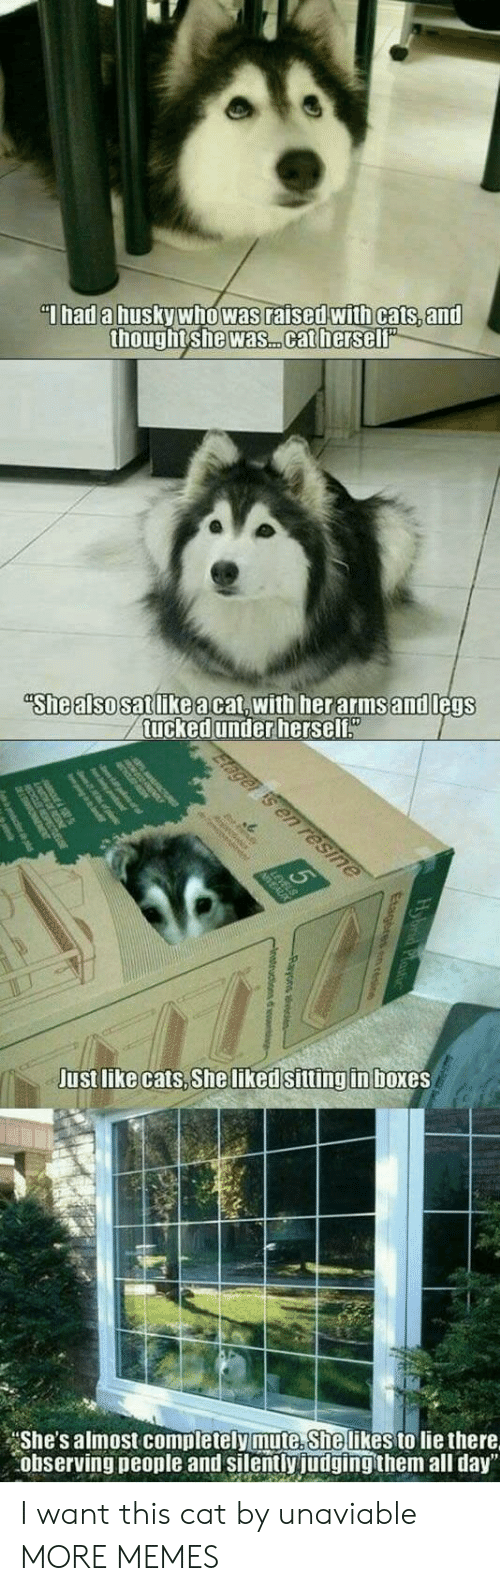 """Tucked: Thad a husky who was raised with cats, and  thought she was. .cat herself""""  """"She also satlikeacat,with herarmsand legs  tucked under herself""""  Elager is en resine  Just like cats, She liked sitting in boxes  She's almost completely mute. She likes to lie there  observing people and silently judging them all day"""" I want this cat by unaviable MORE MEMES"""